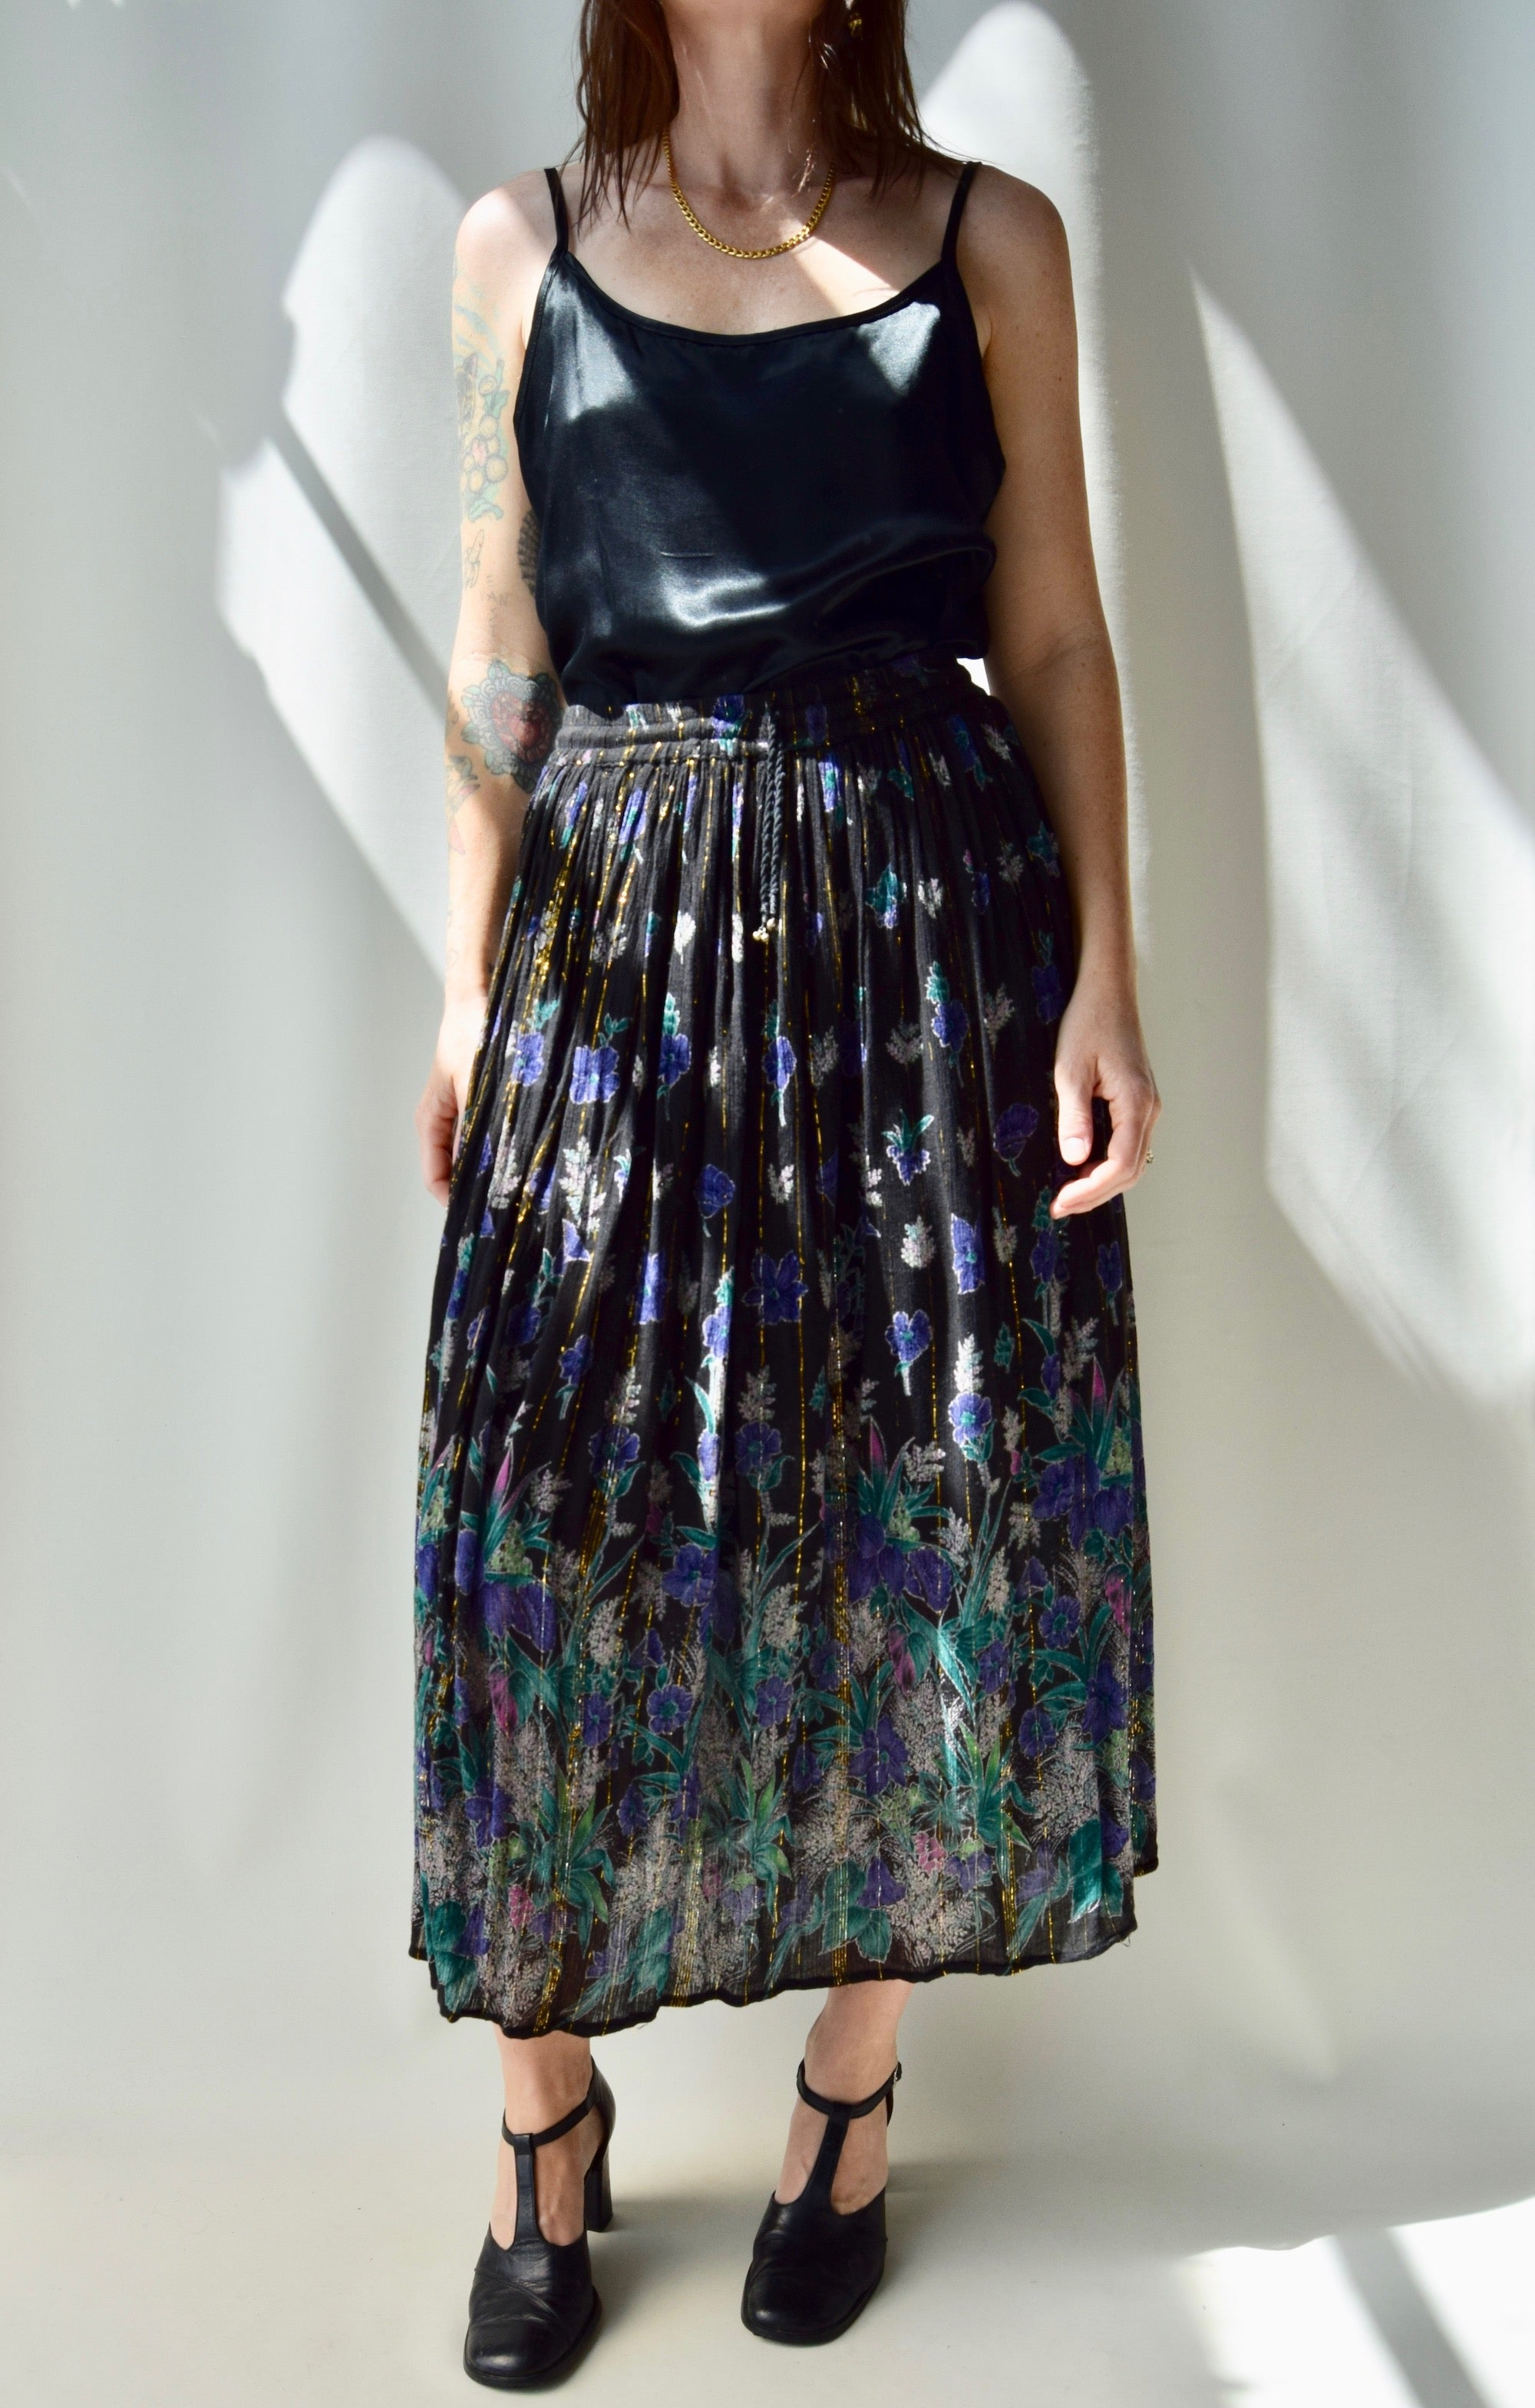 Floral Skirt With Metallic Thread